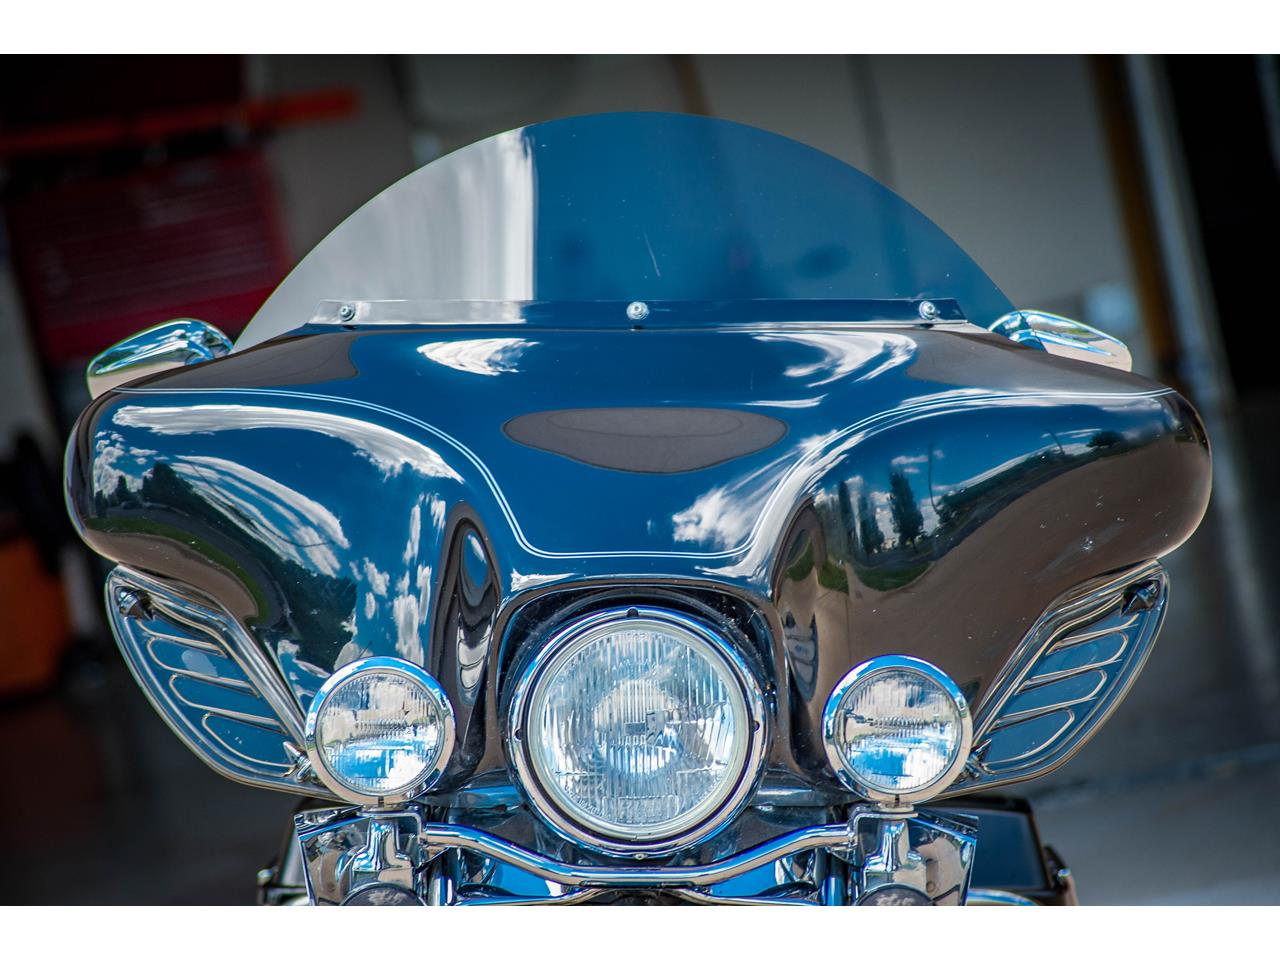 Large Picture of '04 Harley-Davidson Motorcycle located in O'Fallon Illinois Offered by Gateway Classic Cars - St. Louis - QD6F